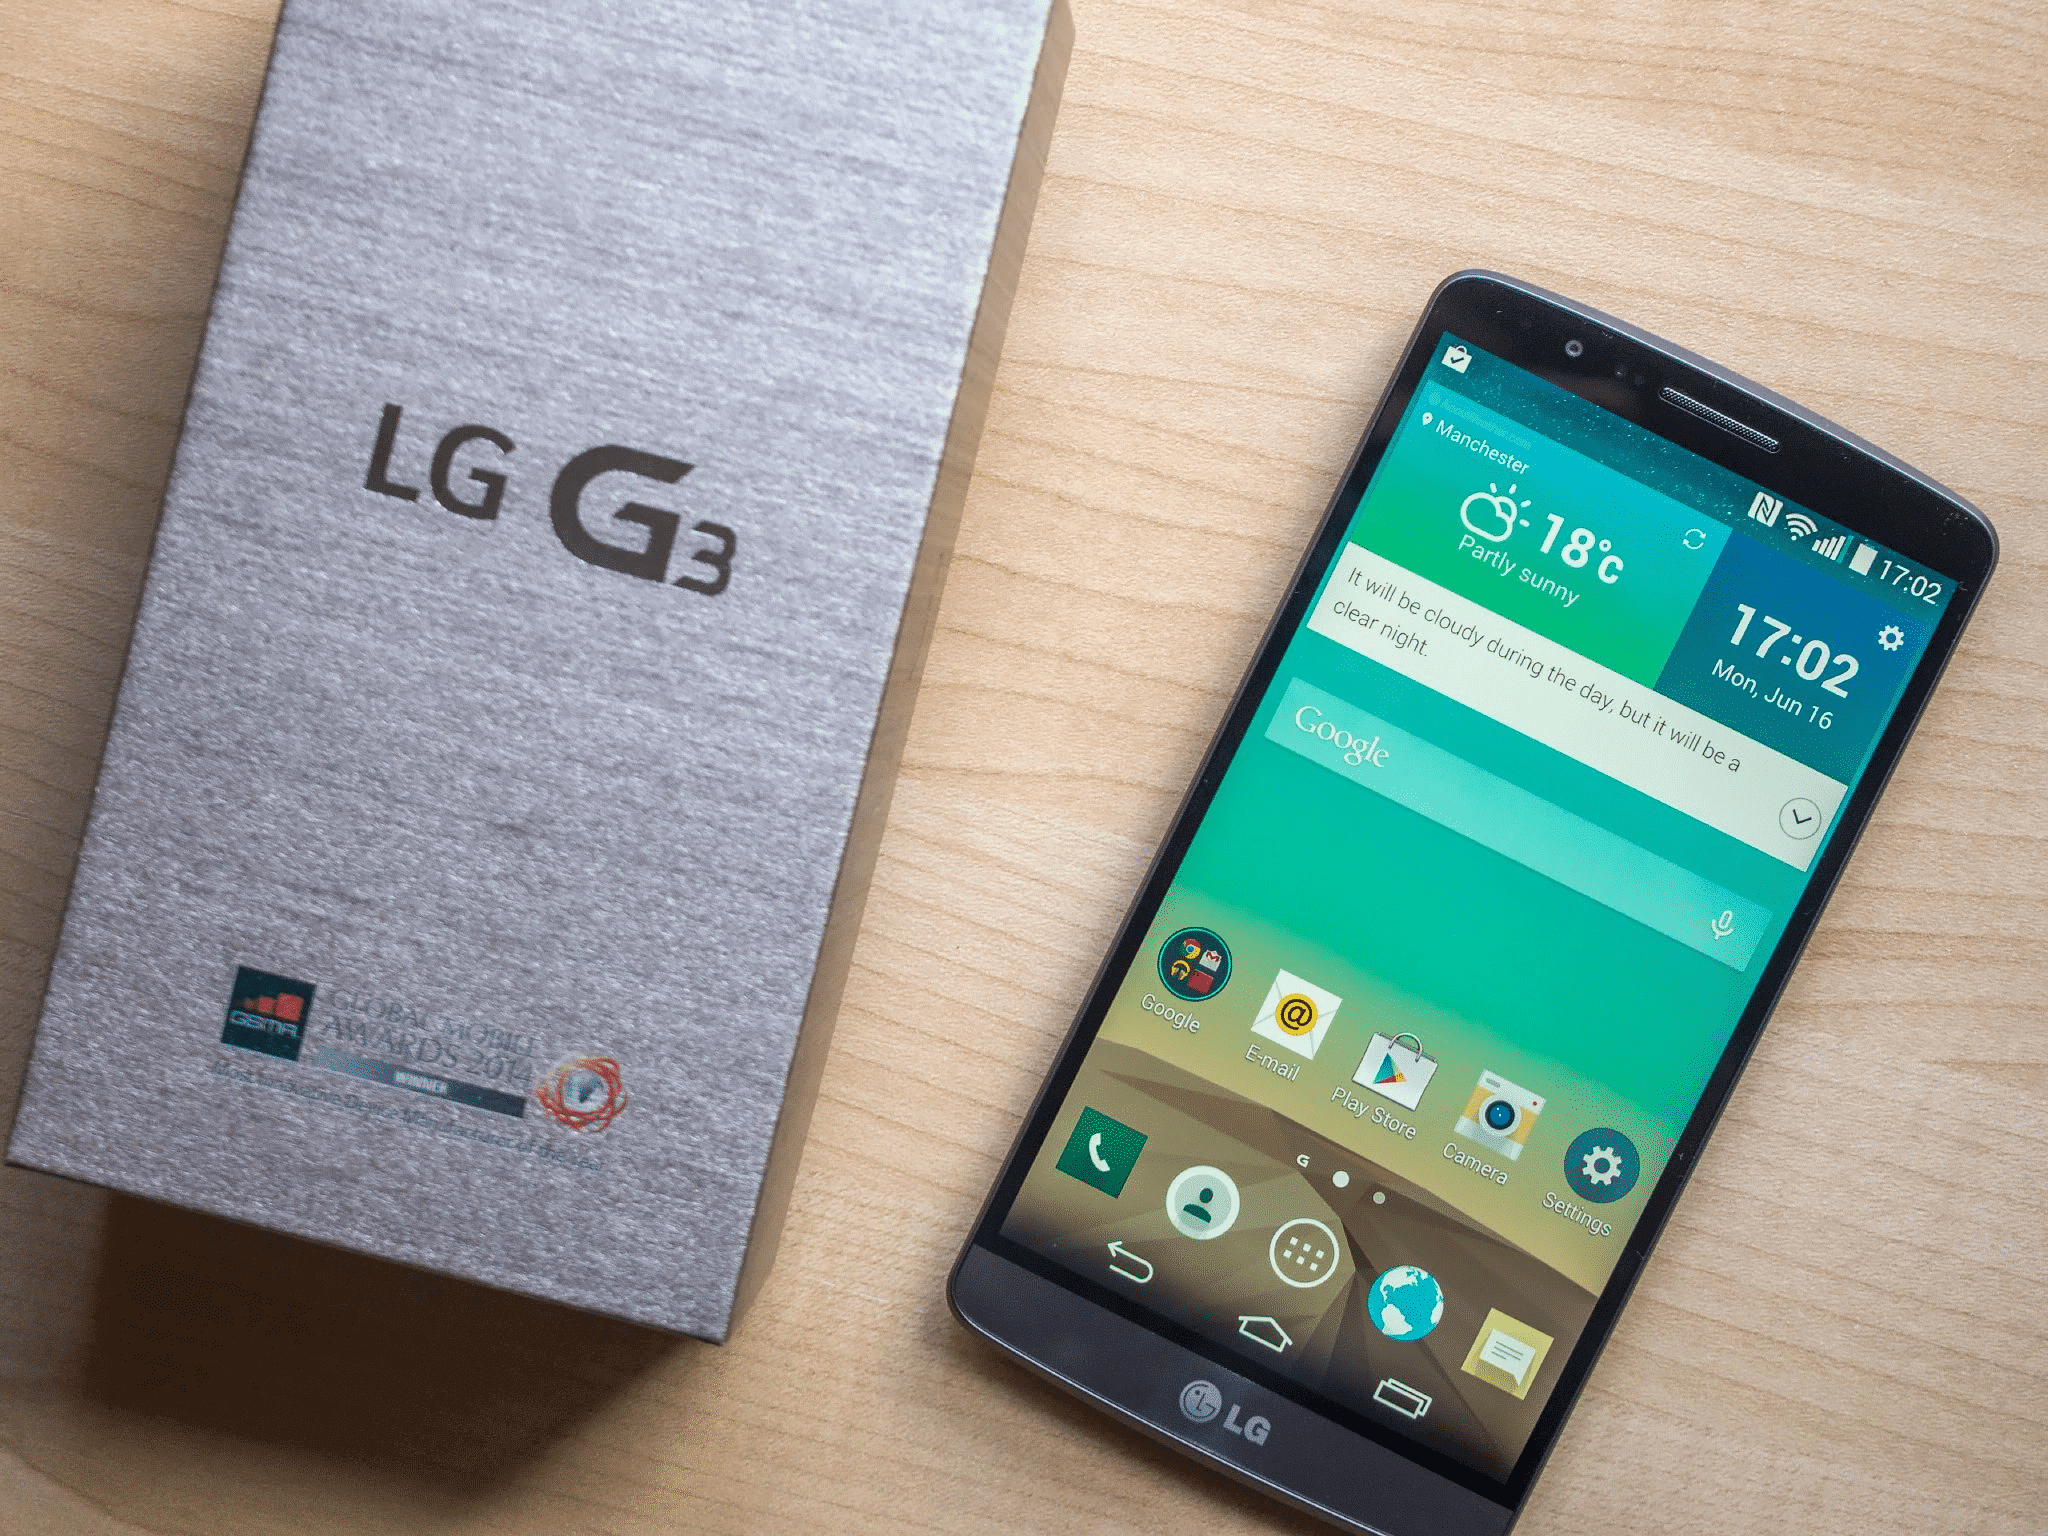 lg-g3-855-android-7-1-cm-14-1